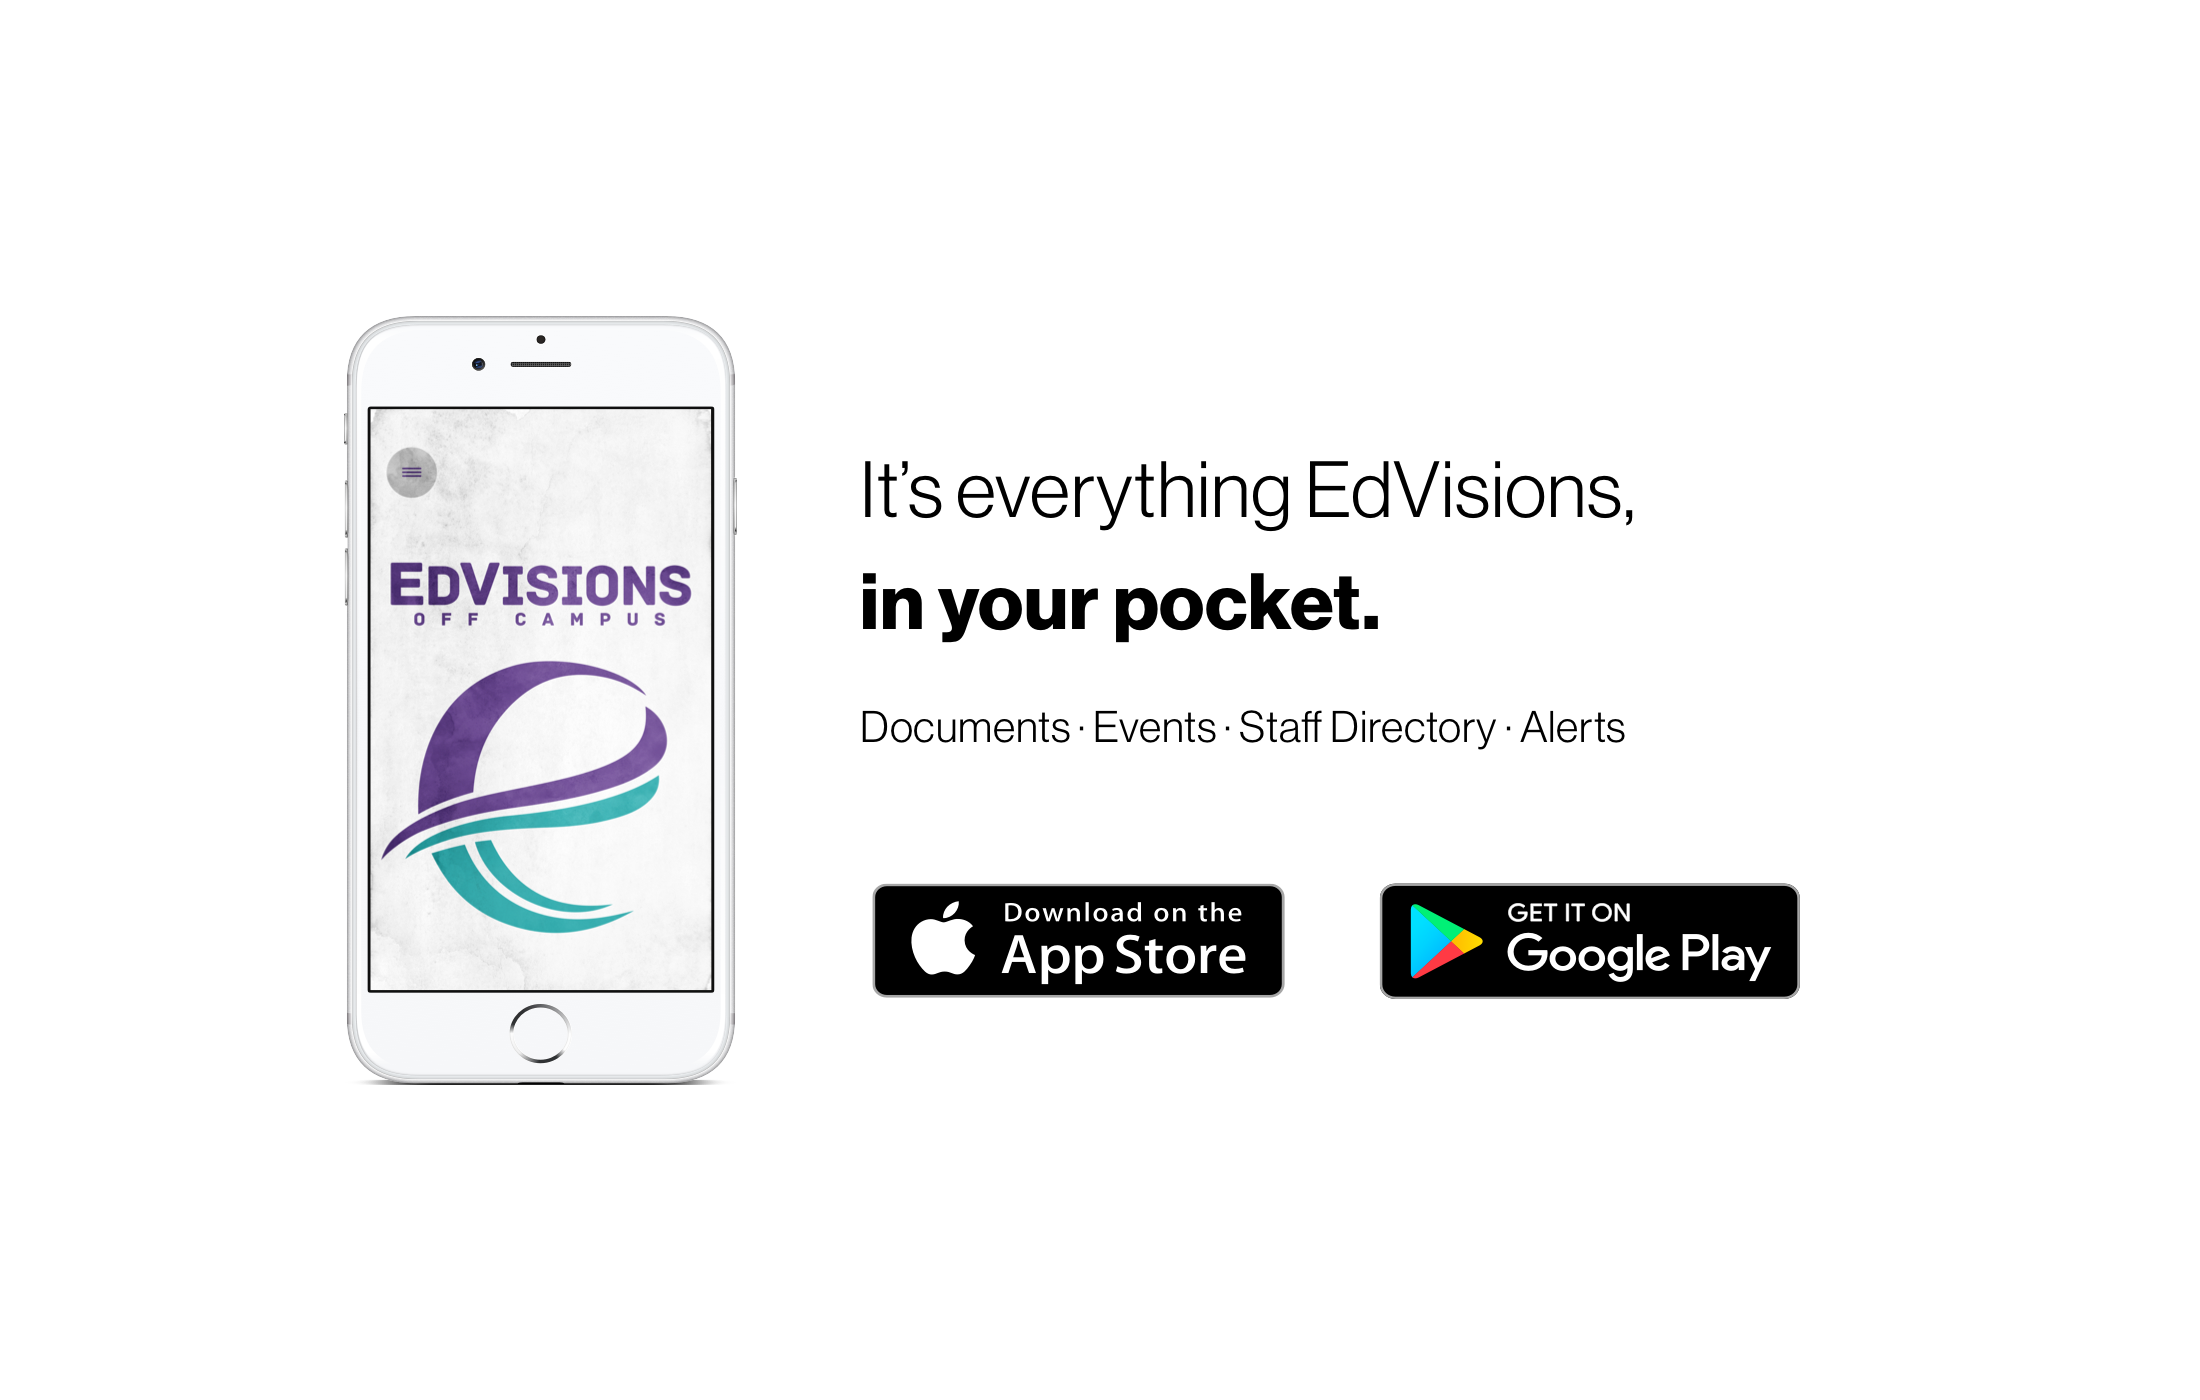 It's Everything EdVisions, in your pocket